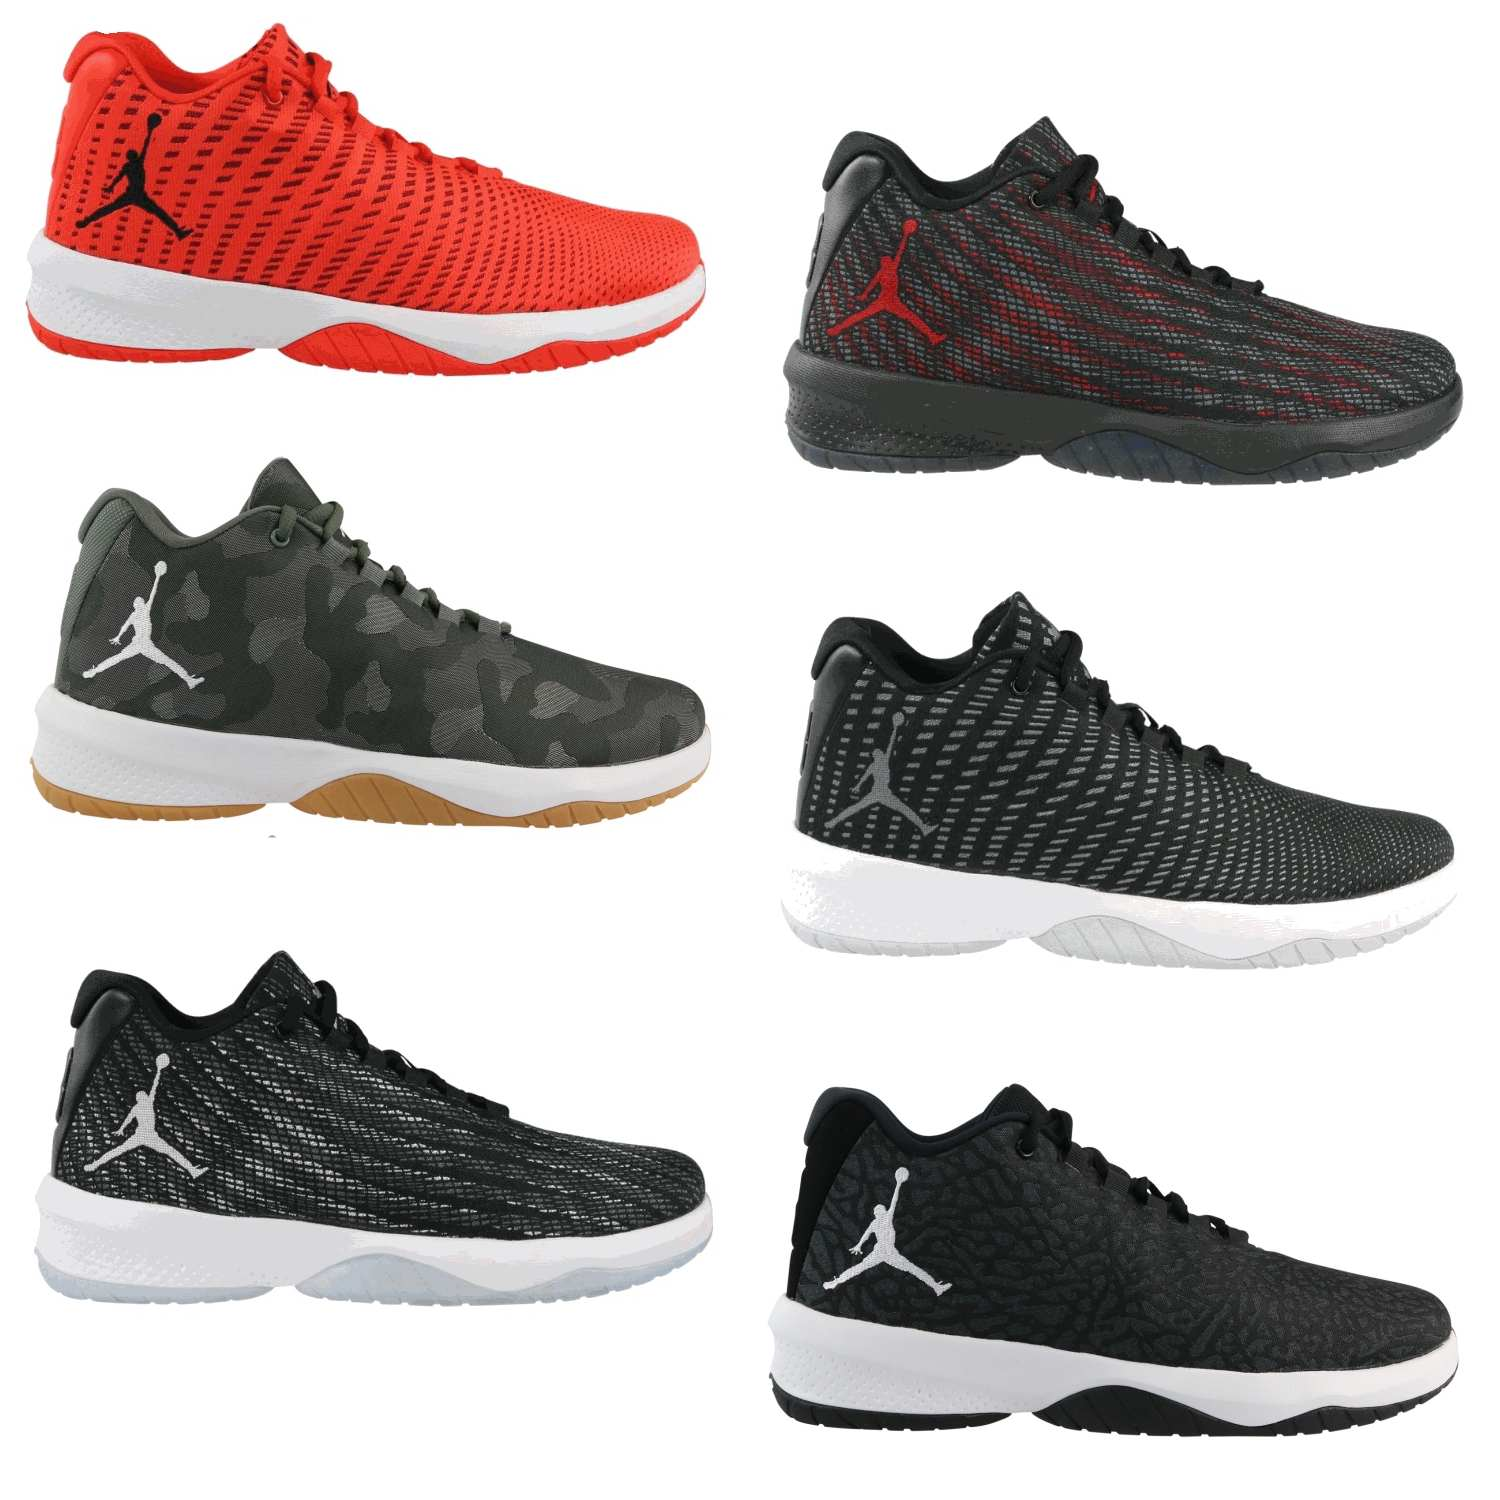 nike jordan b fly schuhe turnschuhe basketballschuhe. Black Bedroom Furniture Sets. Home Design Ideas